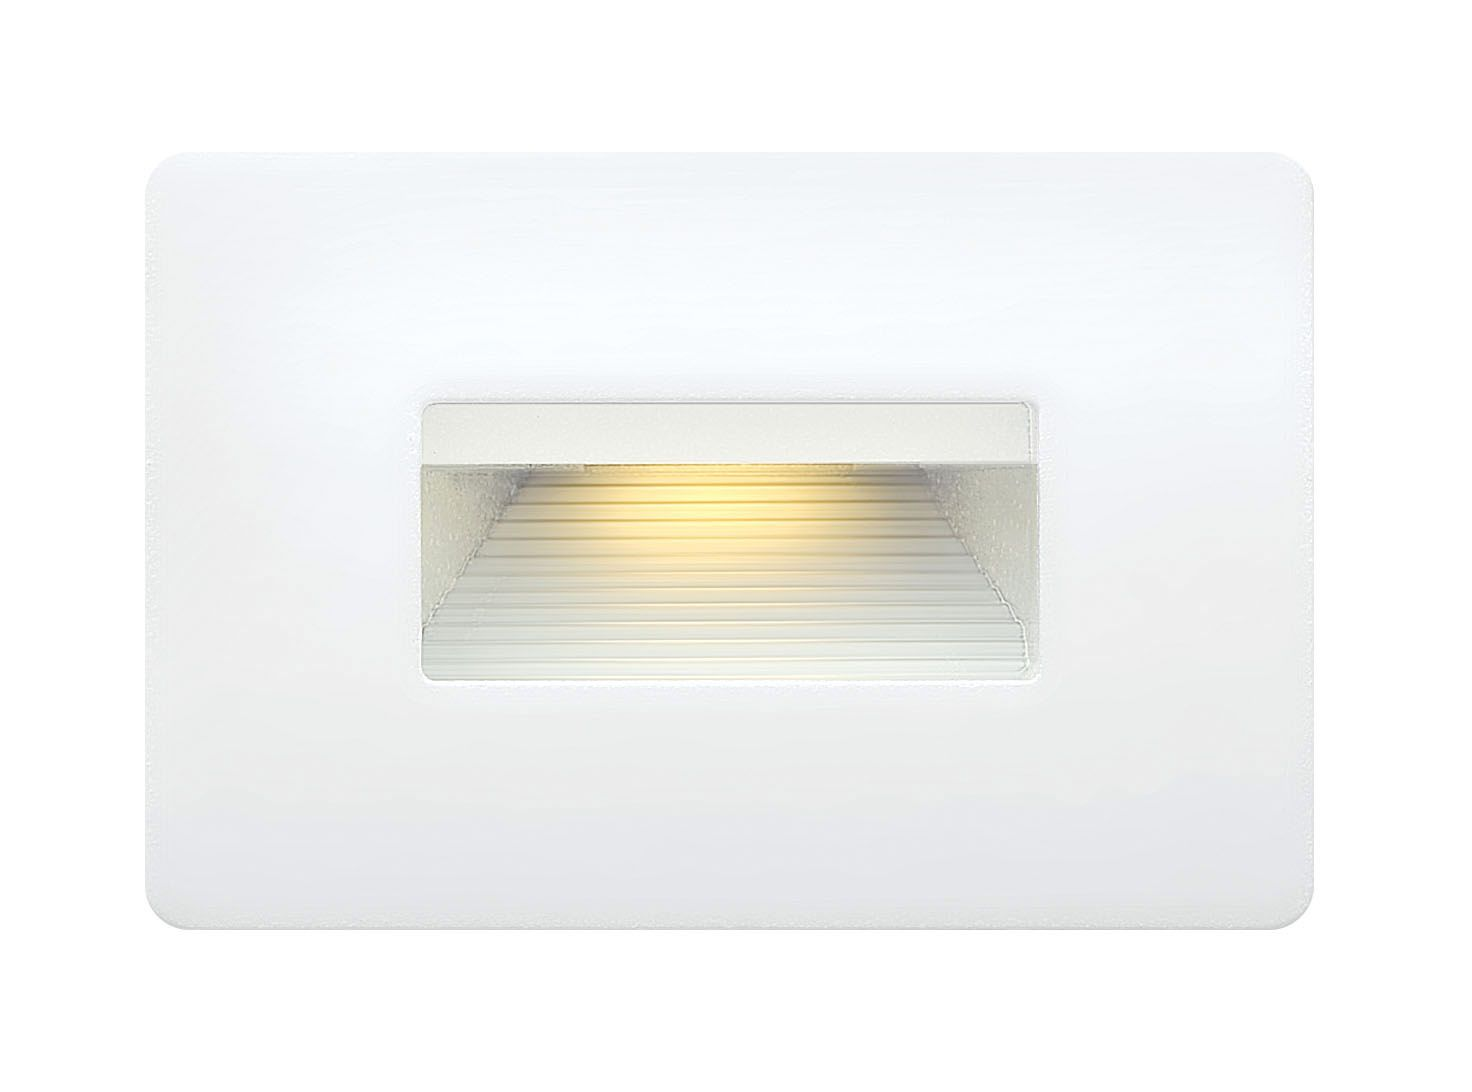 120v Luna Horizontal Step Light By Hinkley Lighting 58508sw Hinkley Lighting Led Step Lights Deck Lighting